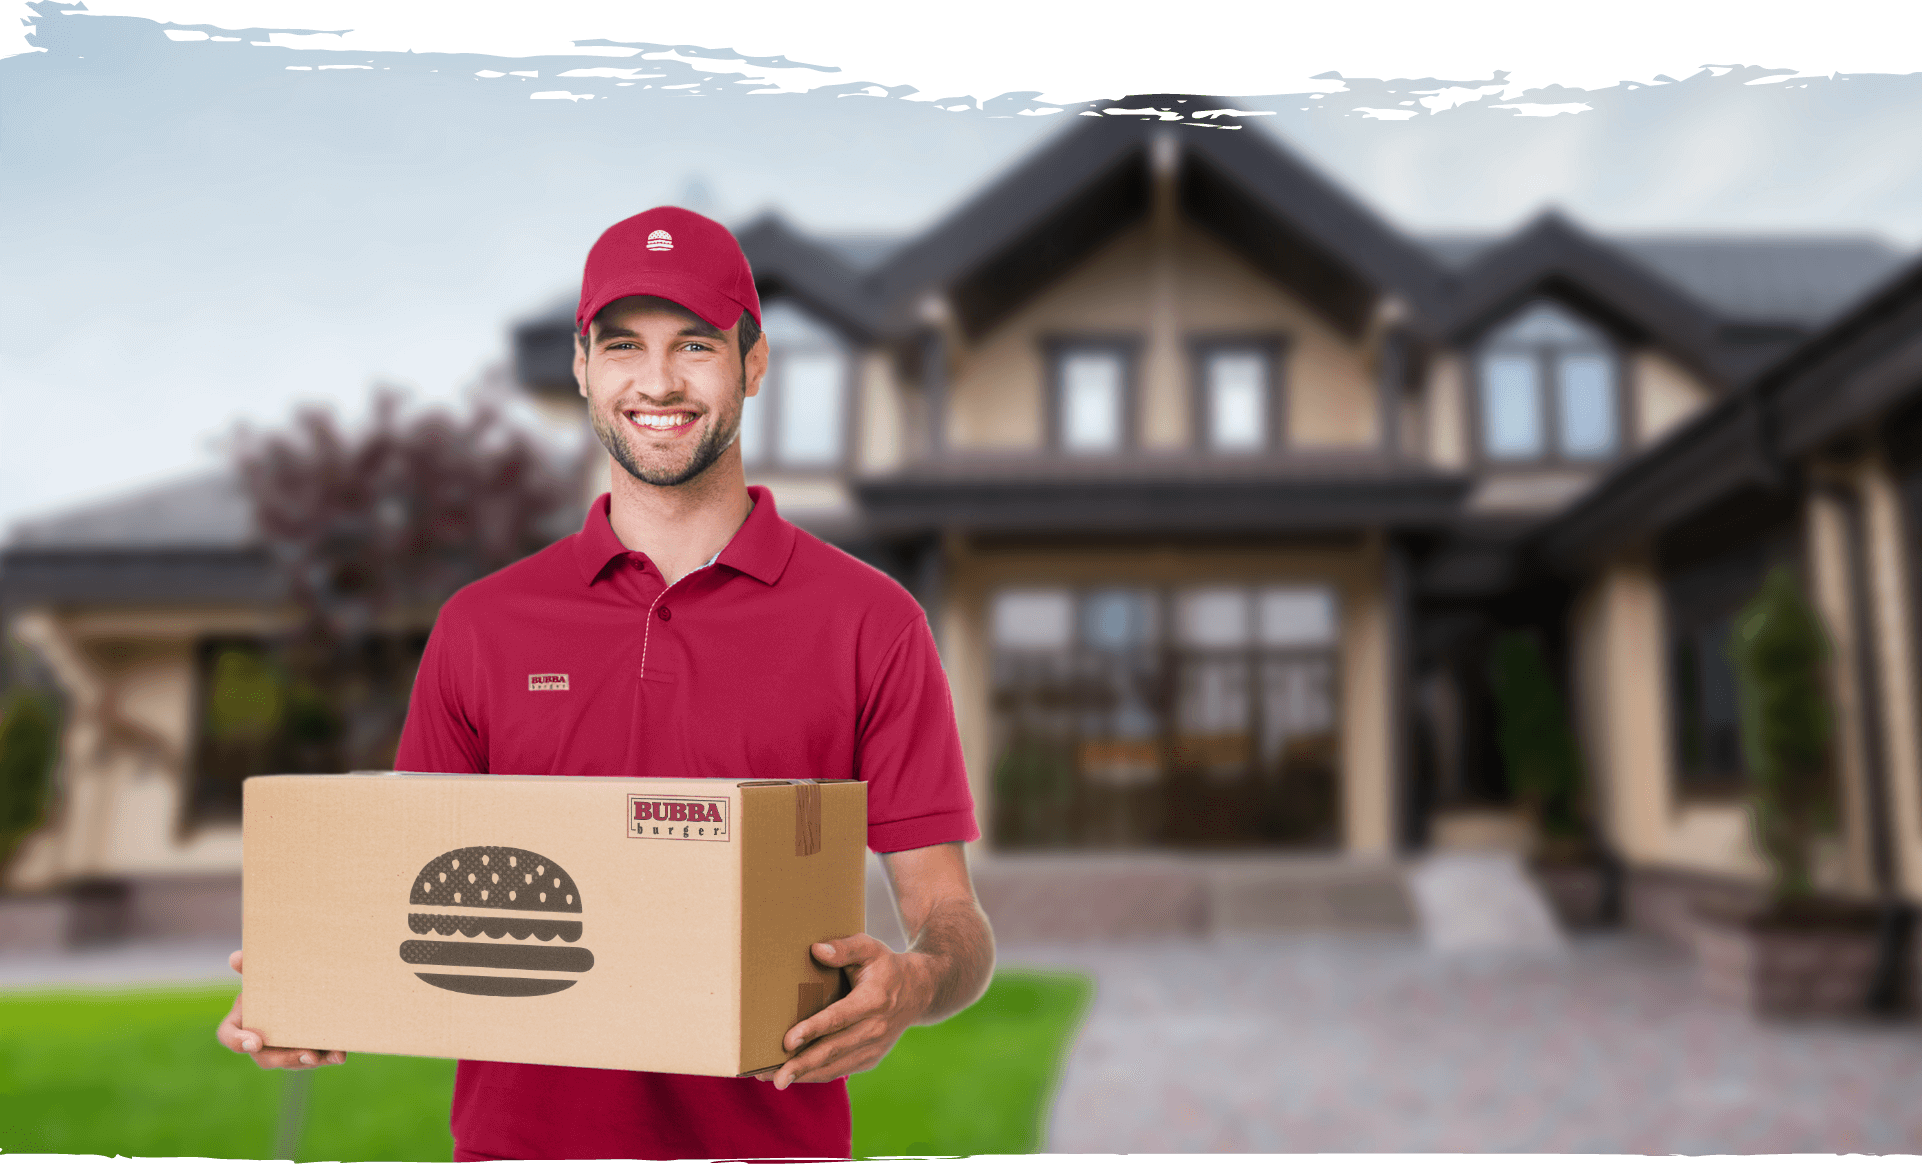 delivery background image